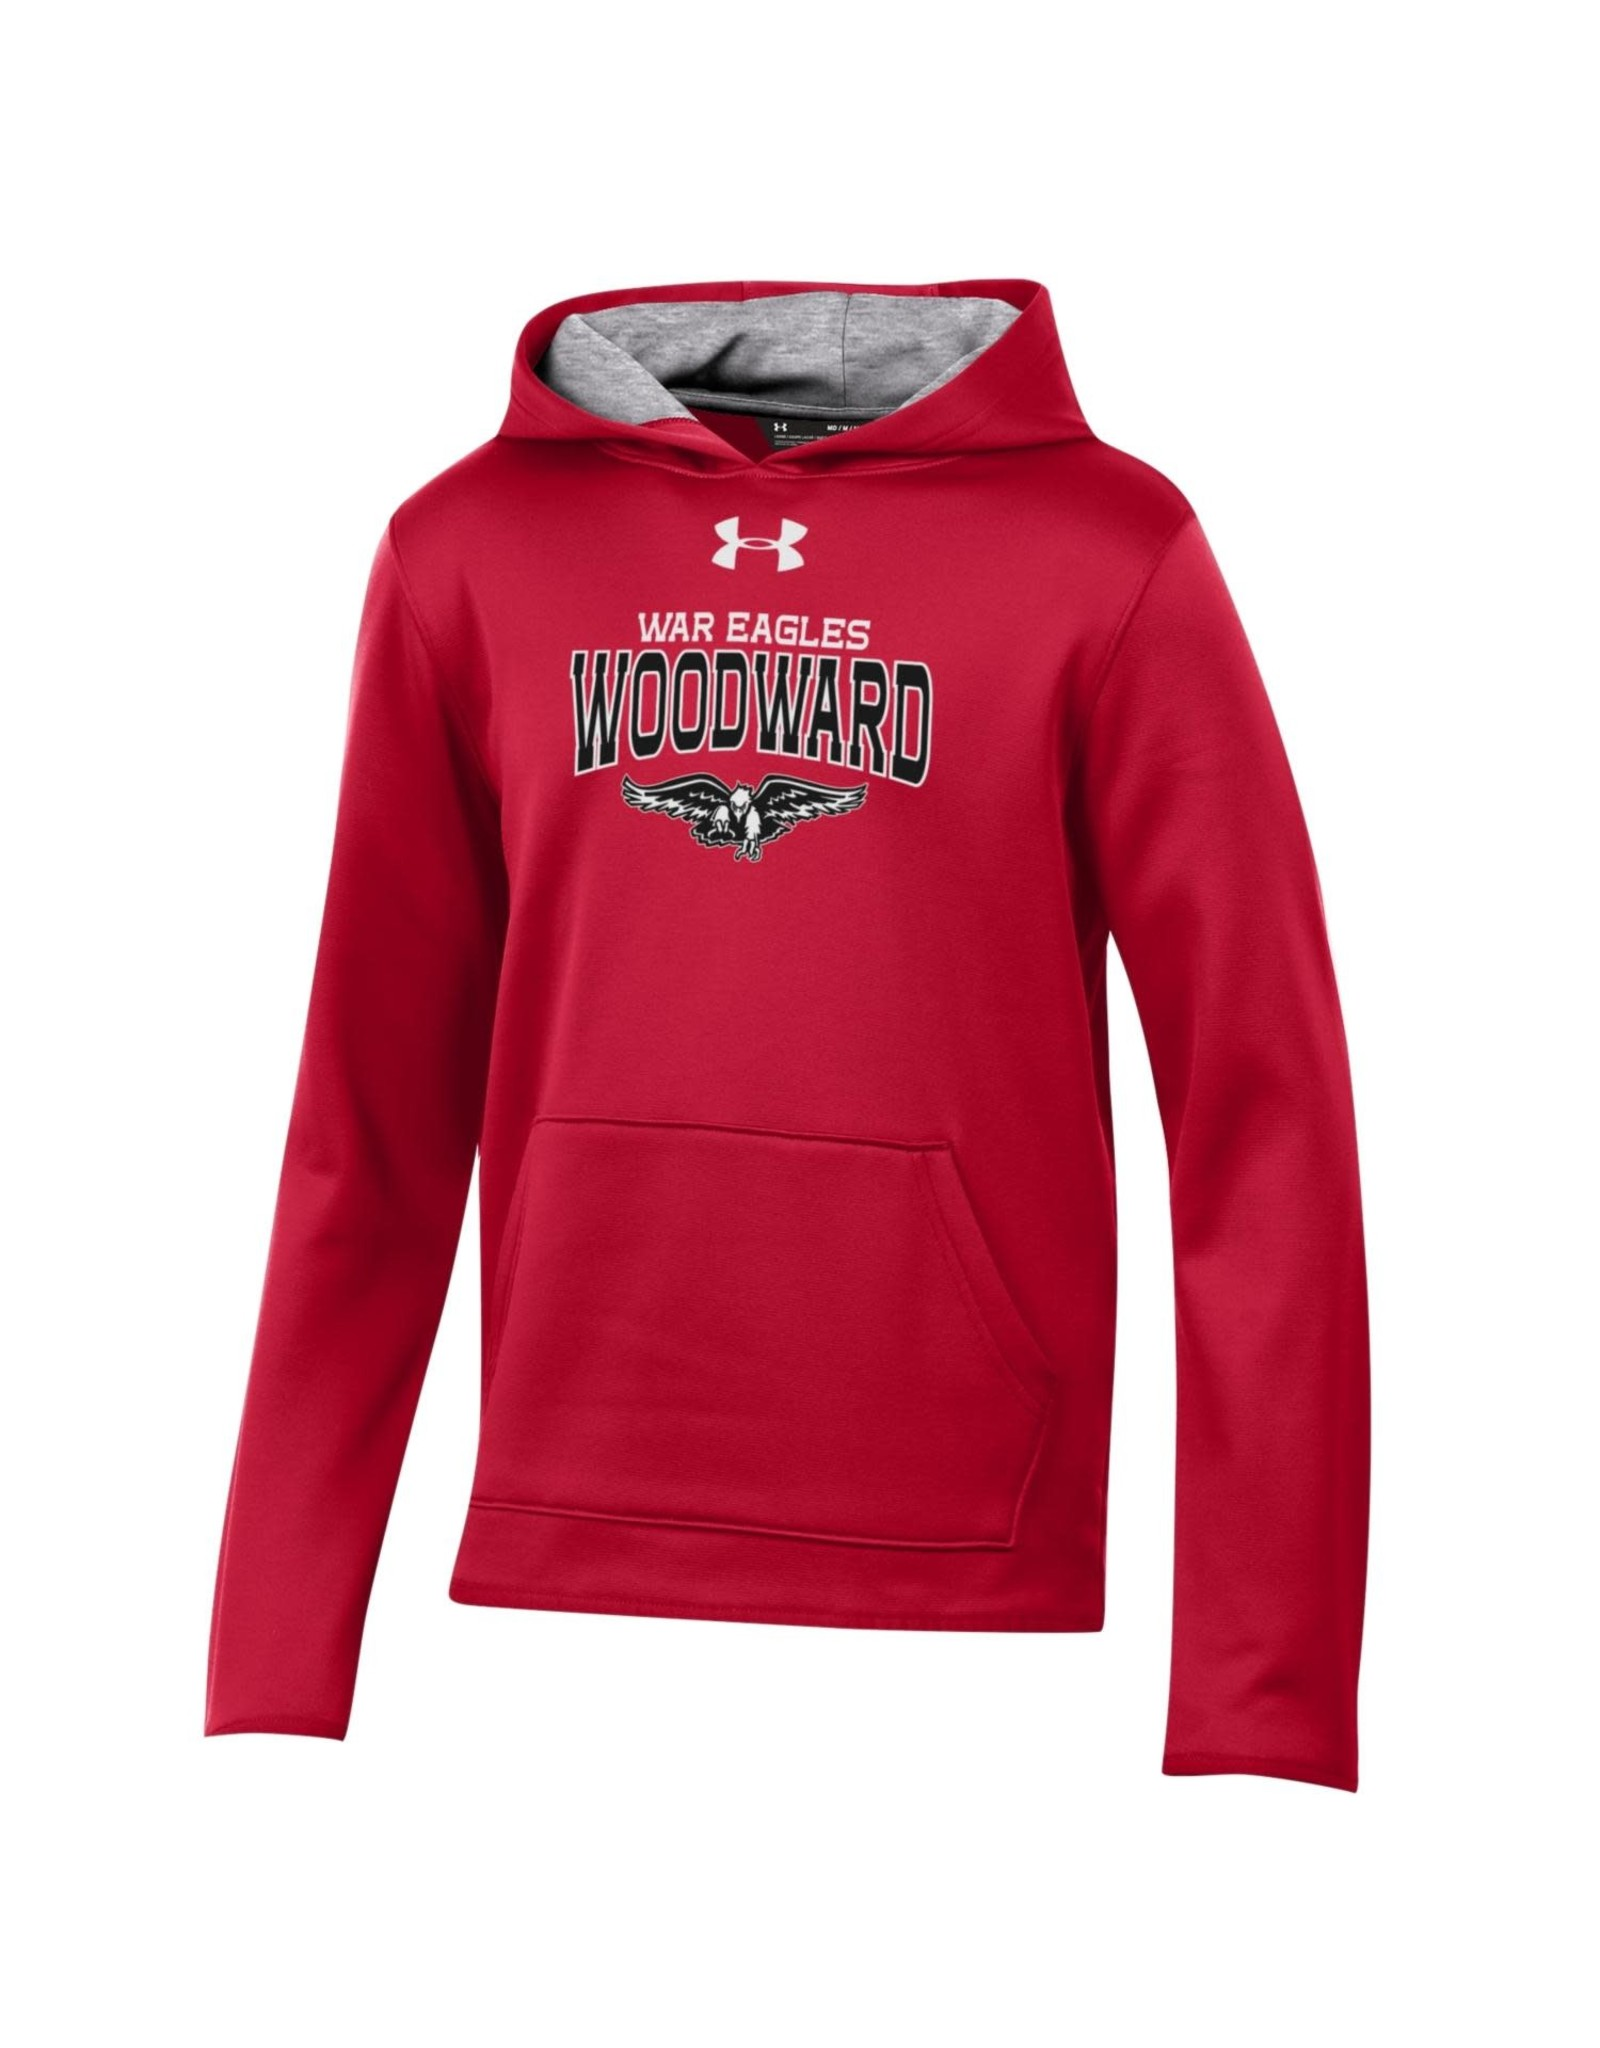 UnderArmour Youth Fleece Lined Hooded Sweatshirt in Red by UnderArmour